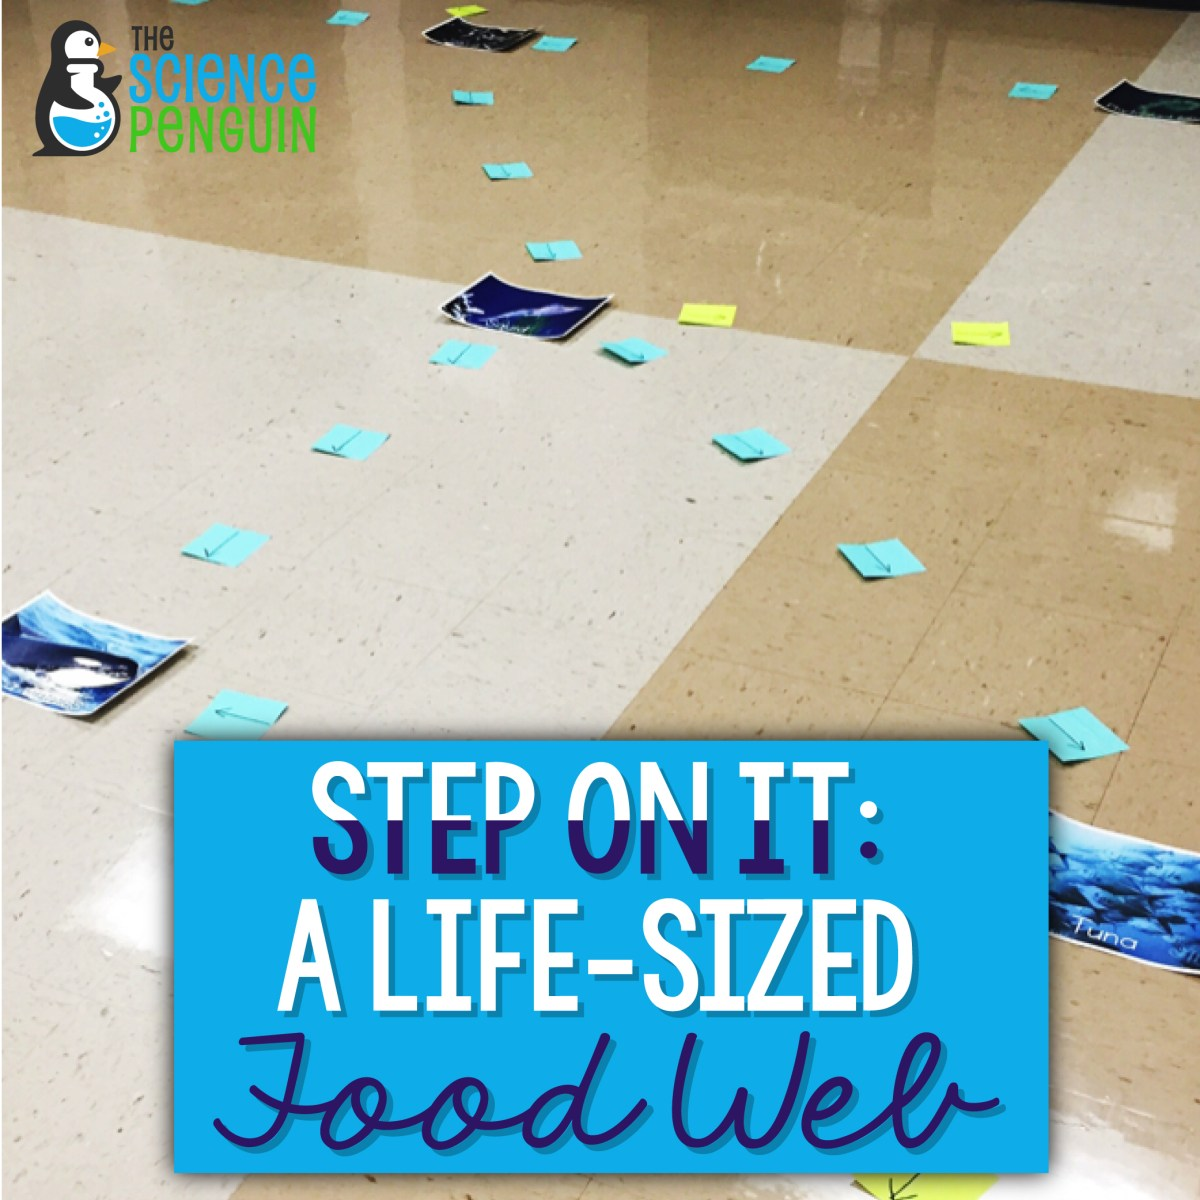 Step on it!  A life-sized food web